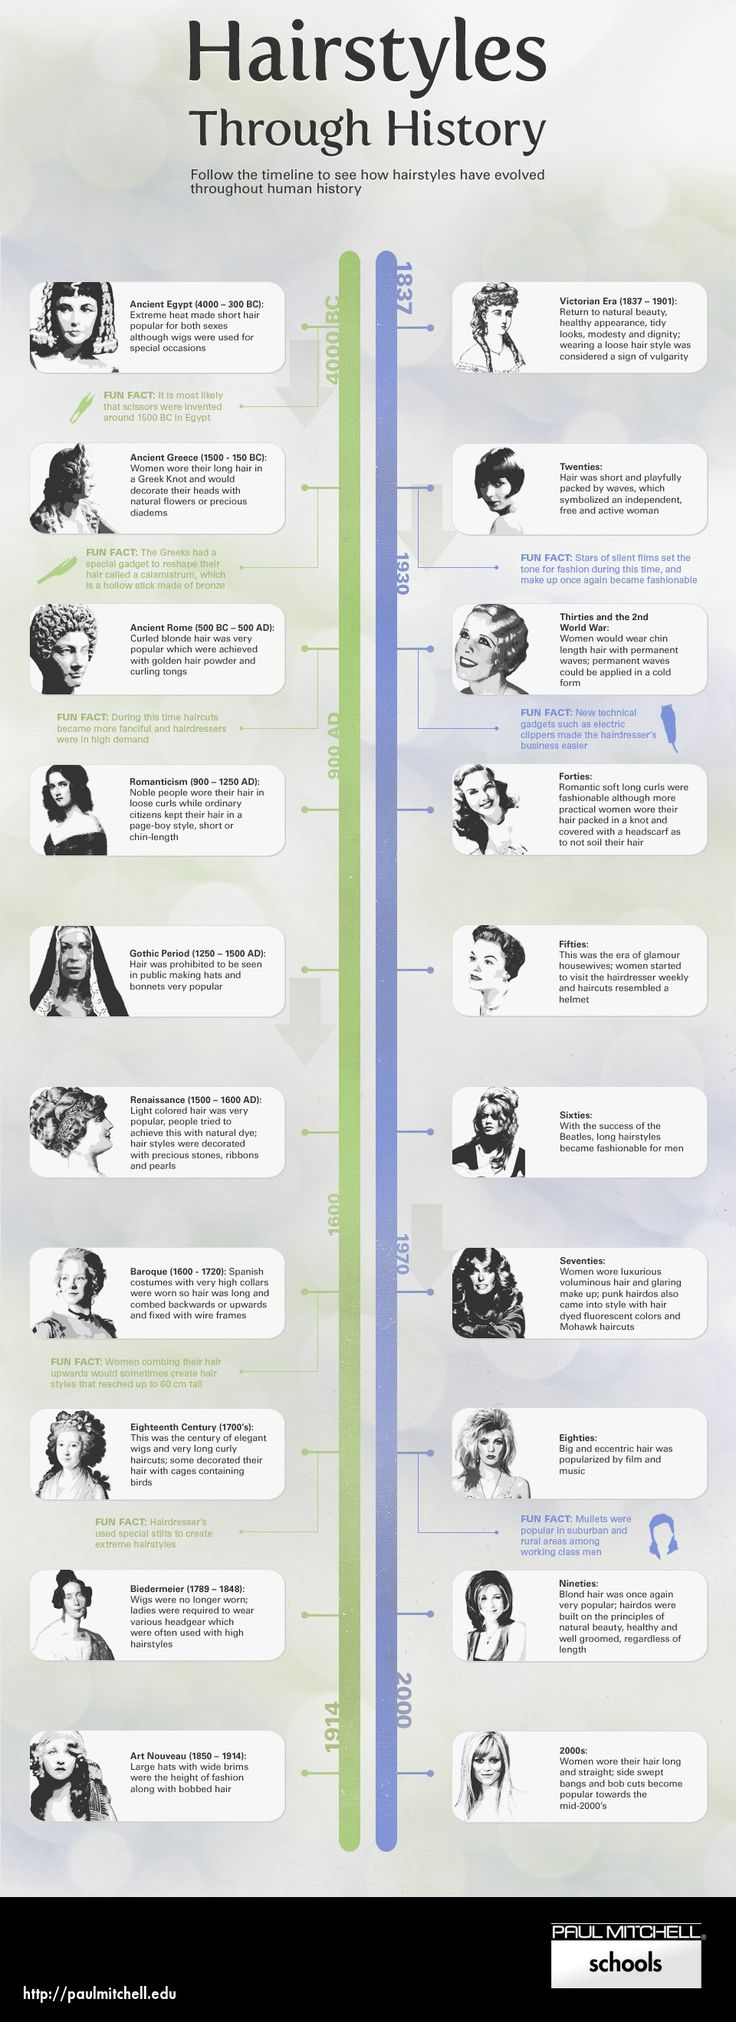 Hairstyles Through History #Infographic